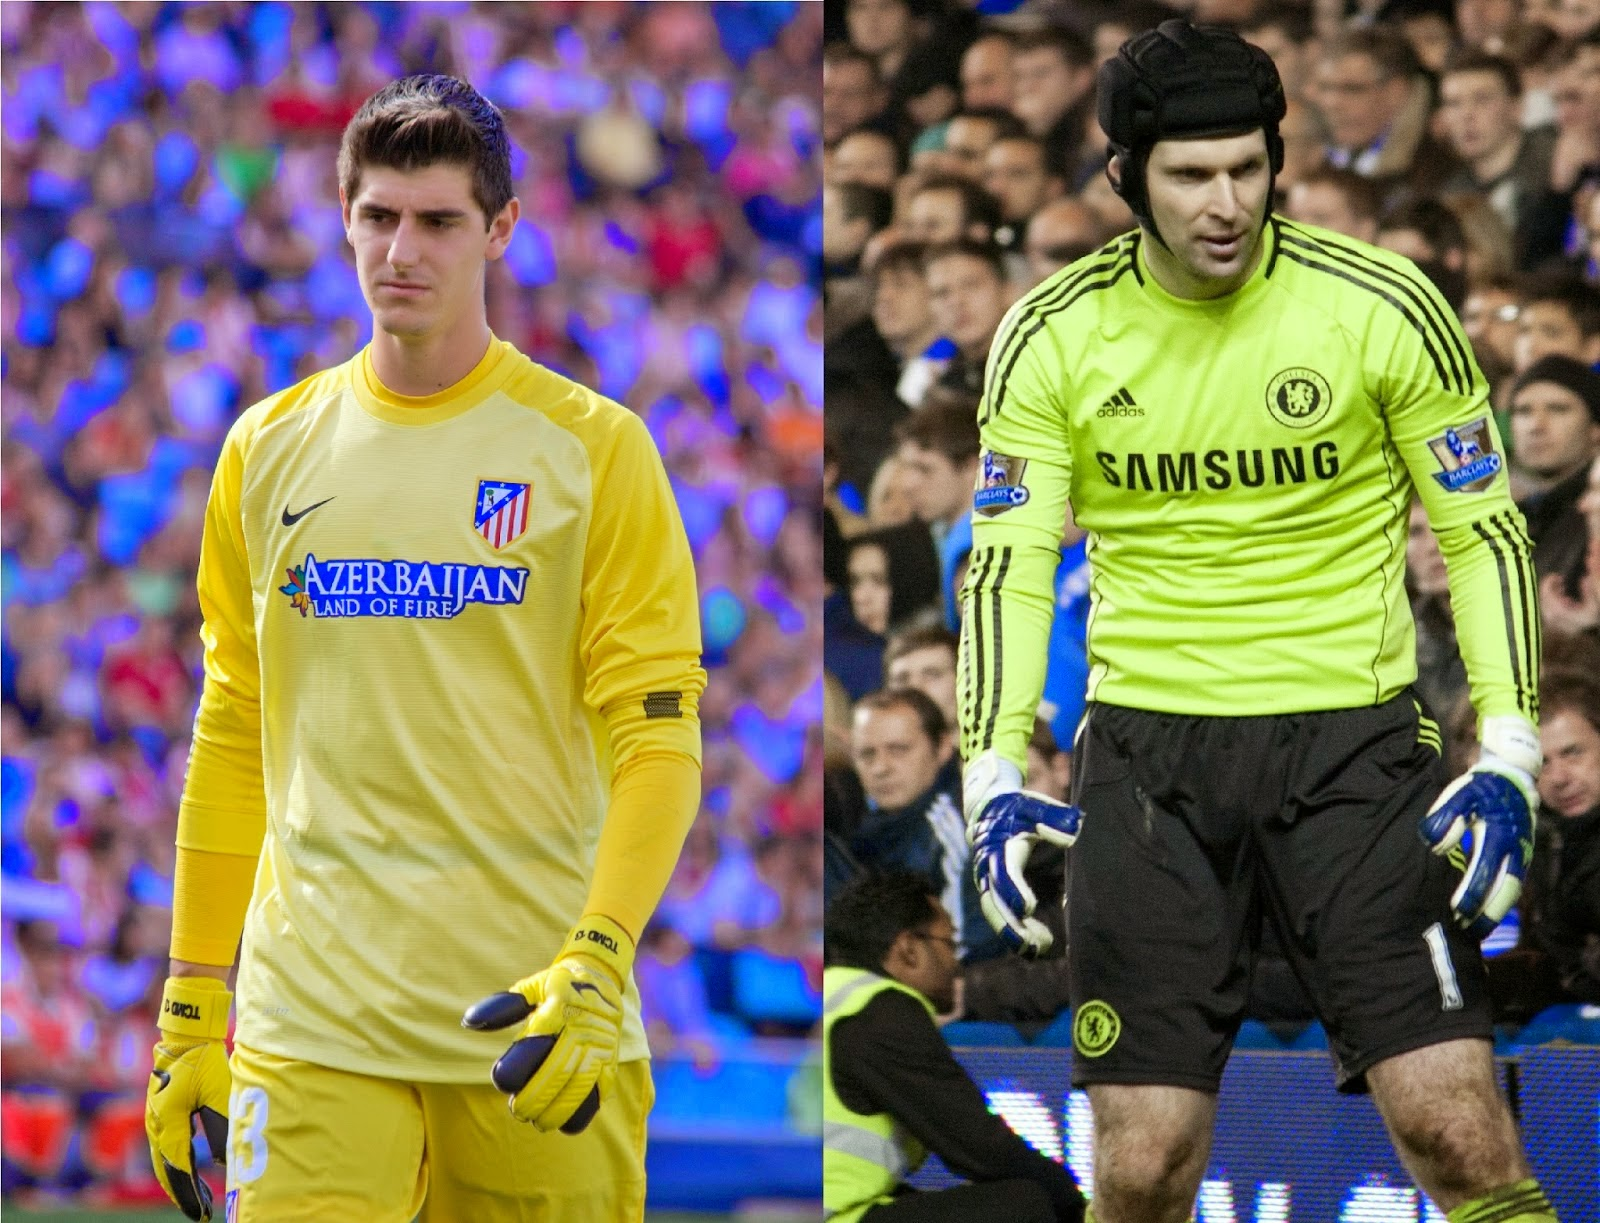 Courtois vs Cech: Who should be Chelsea number one?